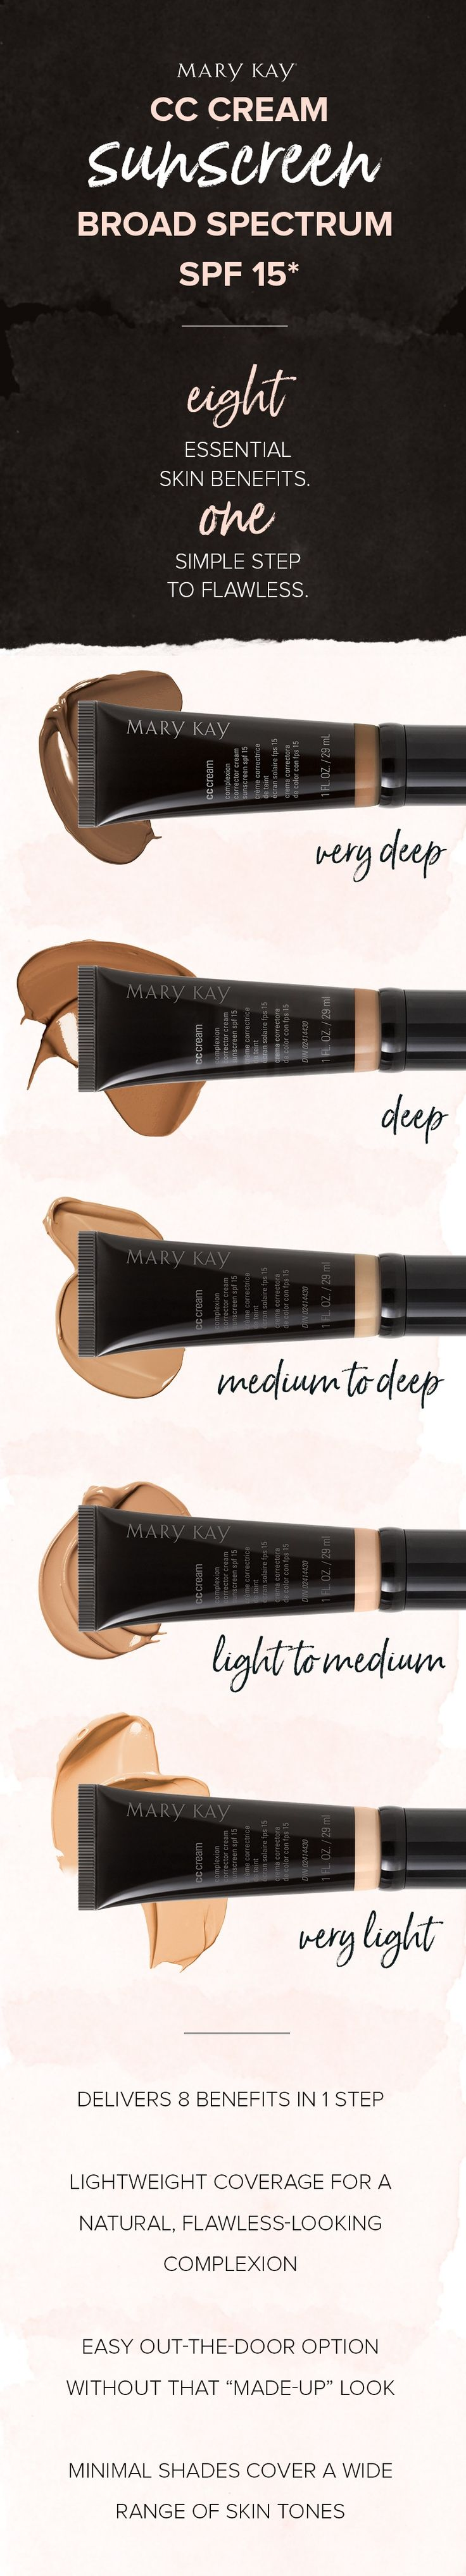 With a formula that acts like makeup and is formulated like skin care. Mary Kay's CC Cream Sunscreen Broad Spectrum SPF 15* makes complexion correction easy! | Mary Kay